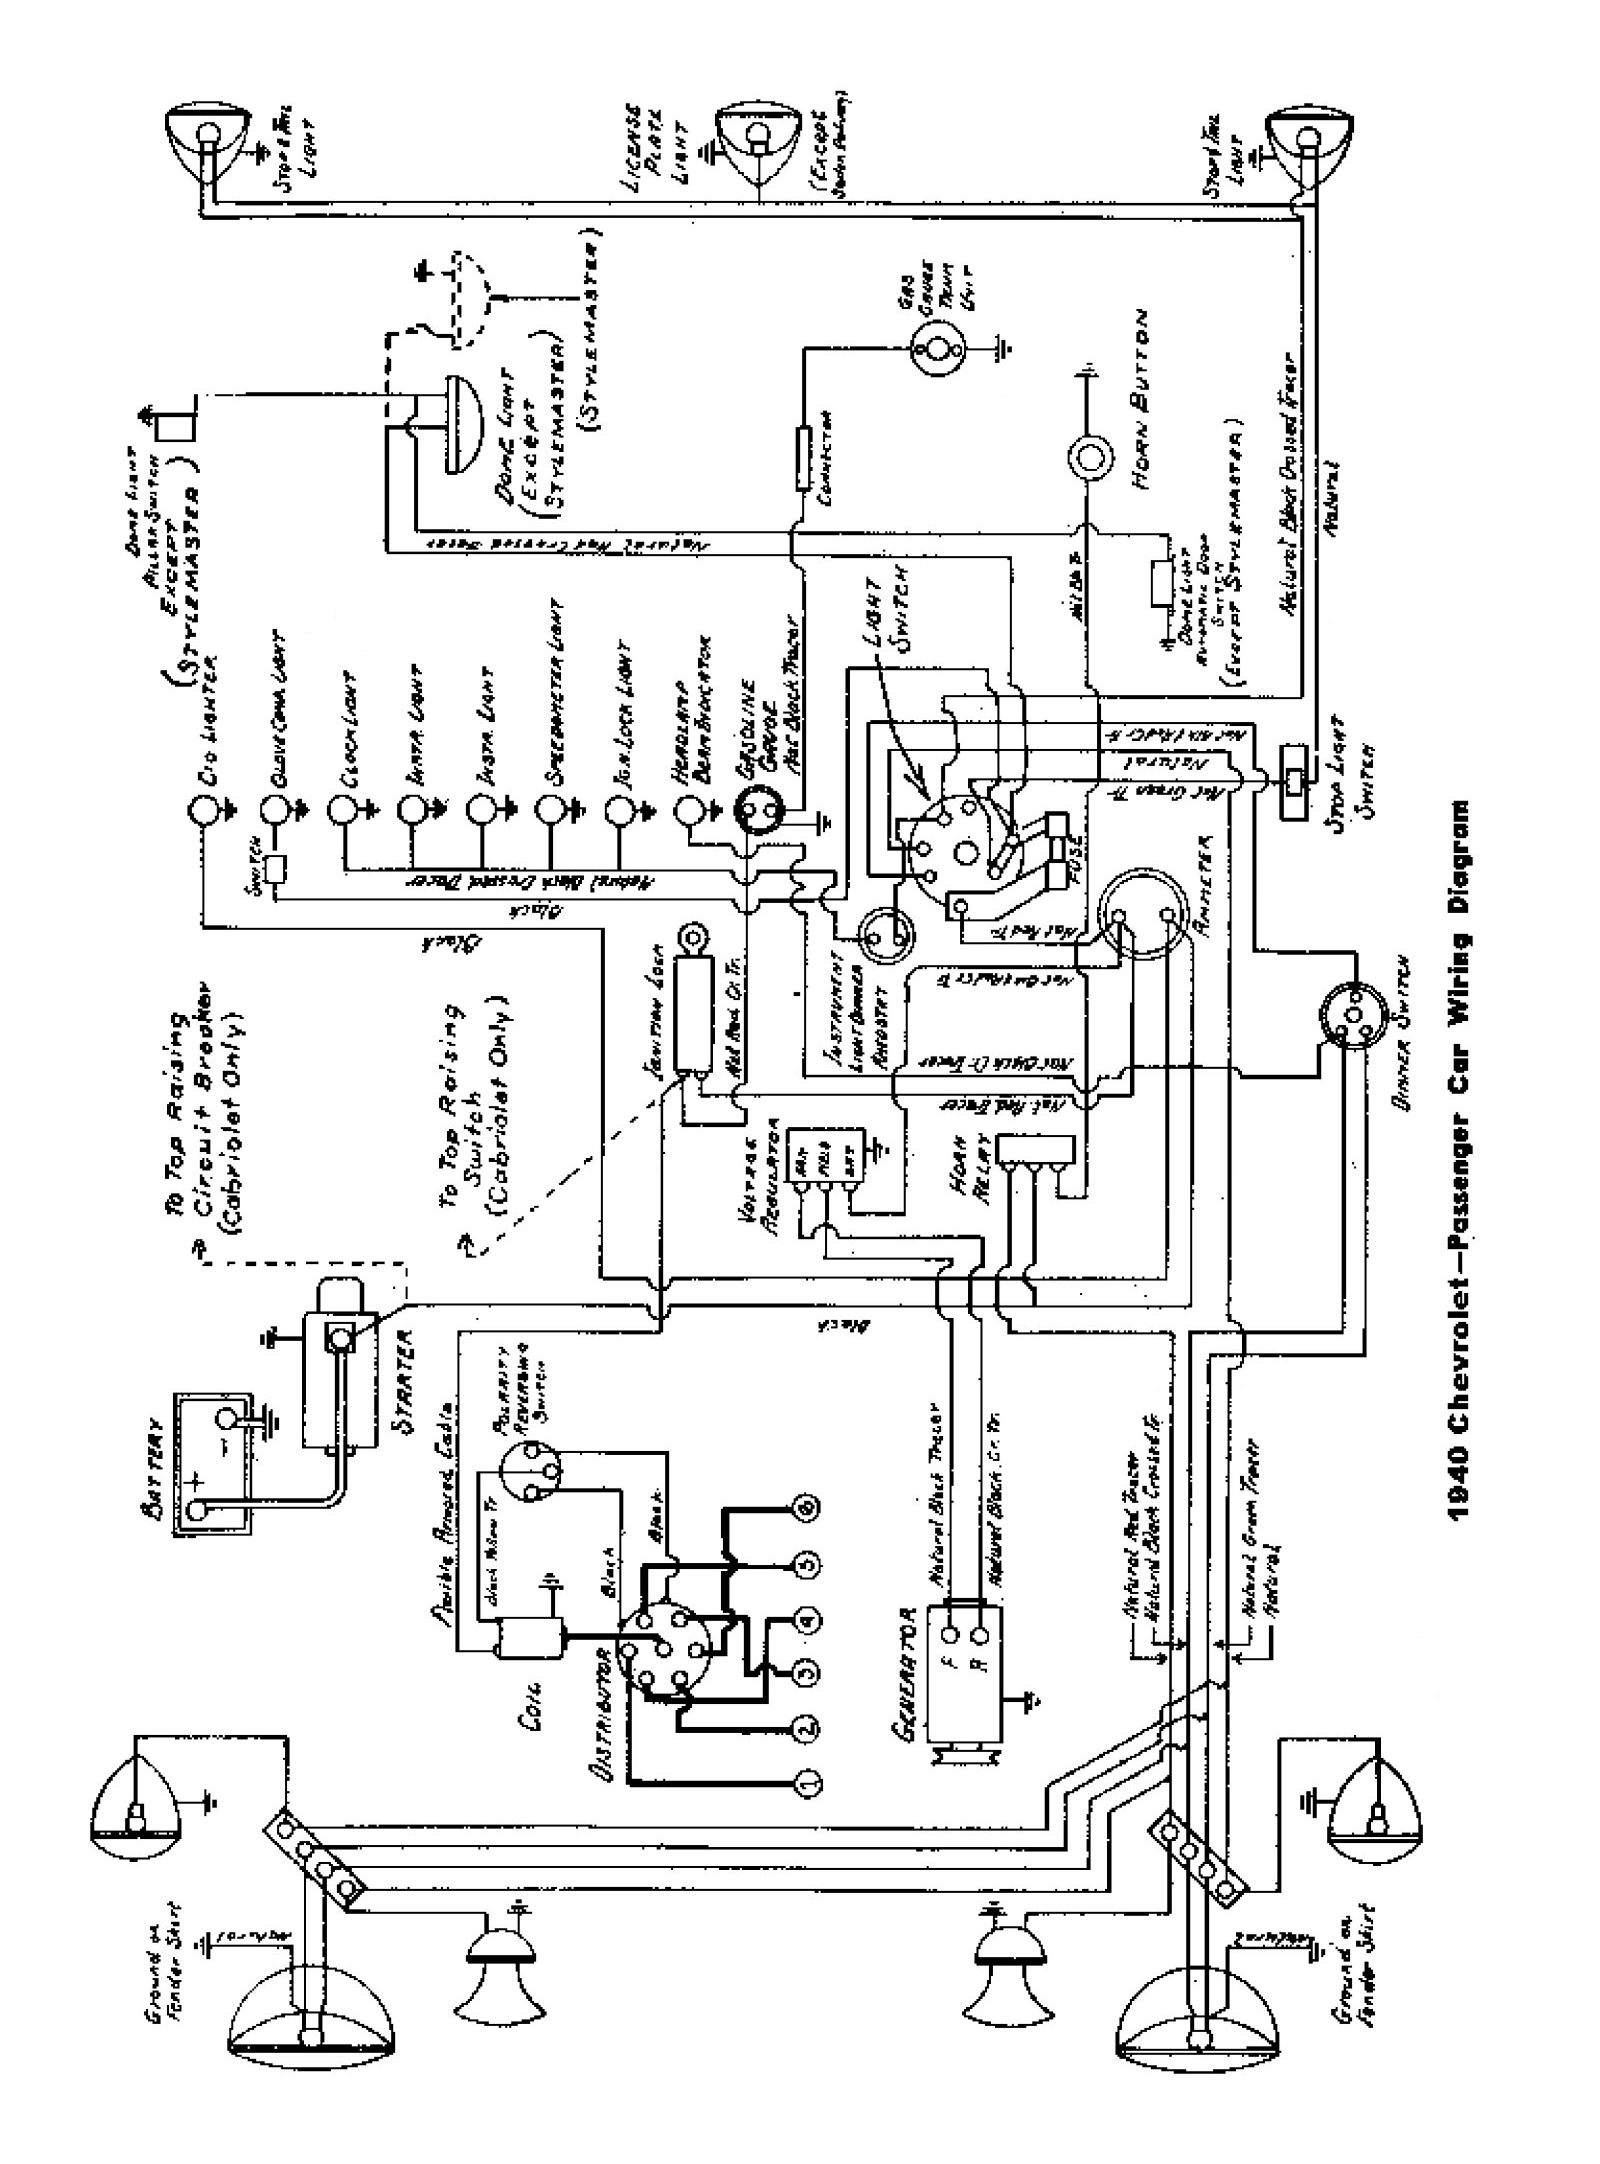 Universal Wiring Harness Diagram 10101 Guide And Troubleshooting 12 Circuit Painless 20103 46 Ford Trusted Rh 18 5 Gartenmoebel Rupp De